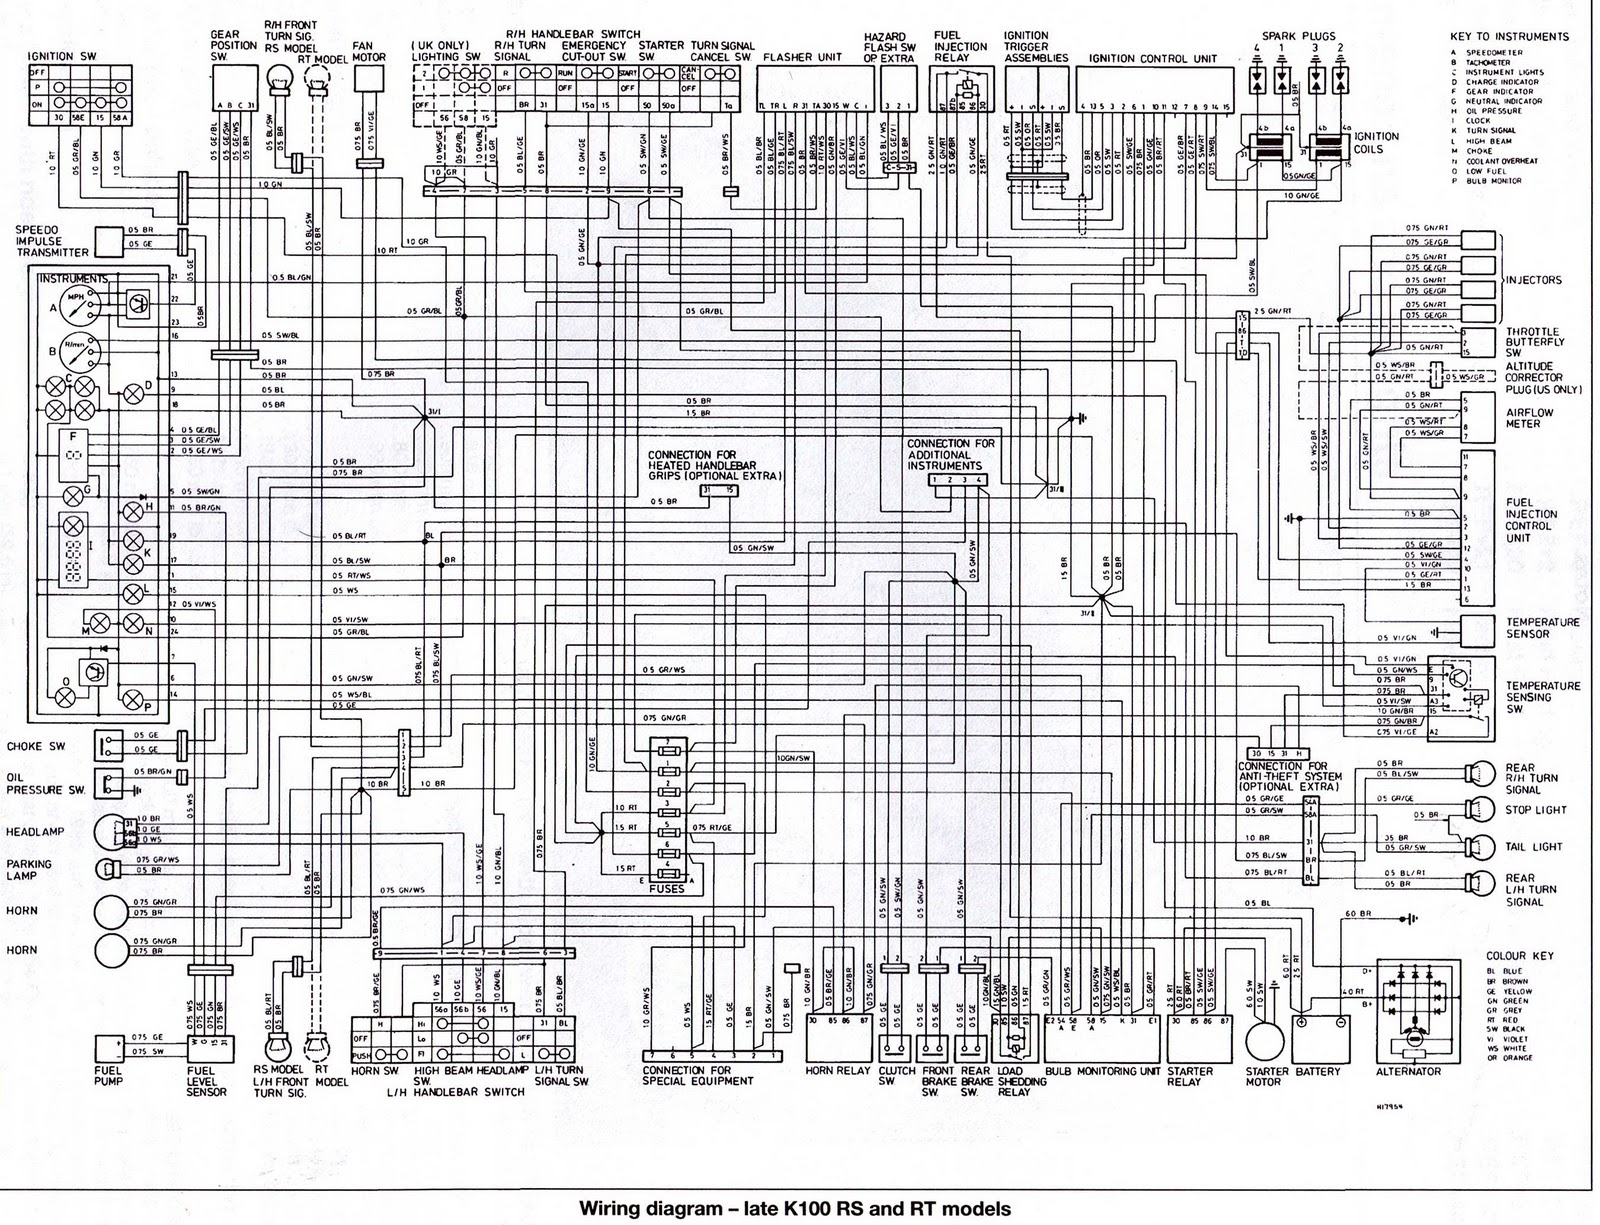 BMW+KR100RS RT+Wiring+Diagram bmw e38 wiring diagram bmw wds download \u2022 free wiring diagrams bmw e38 radio wiring diagram at bayanpartner.co